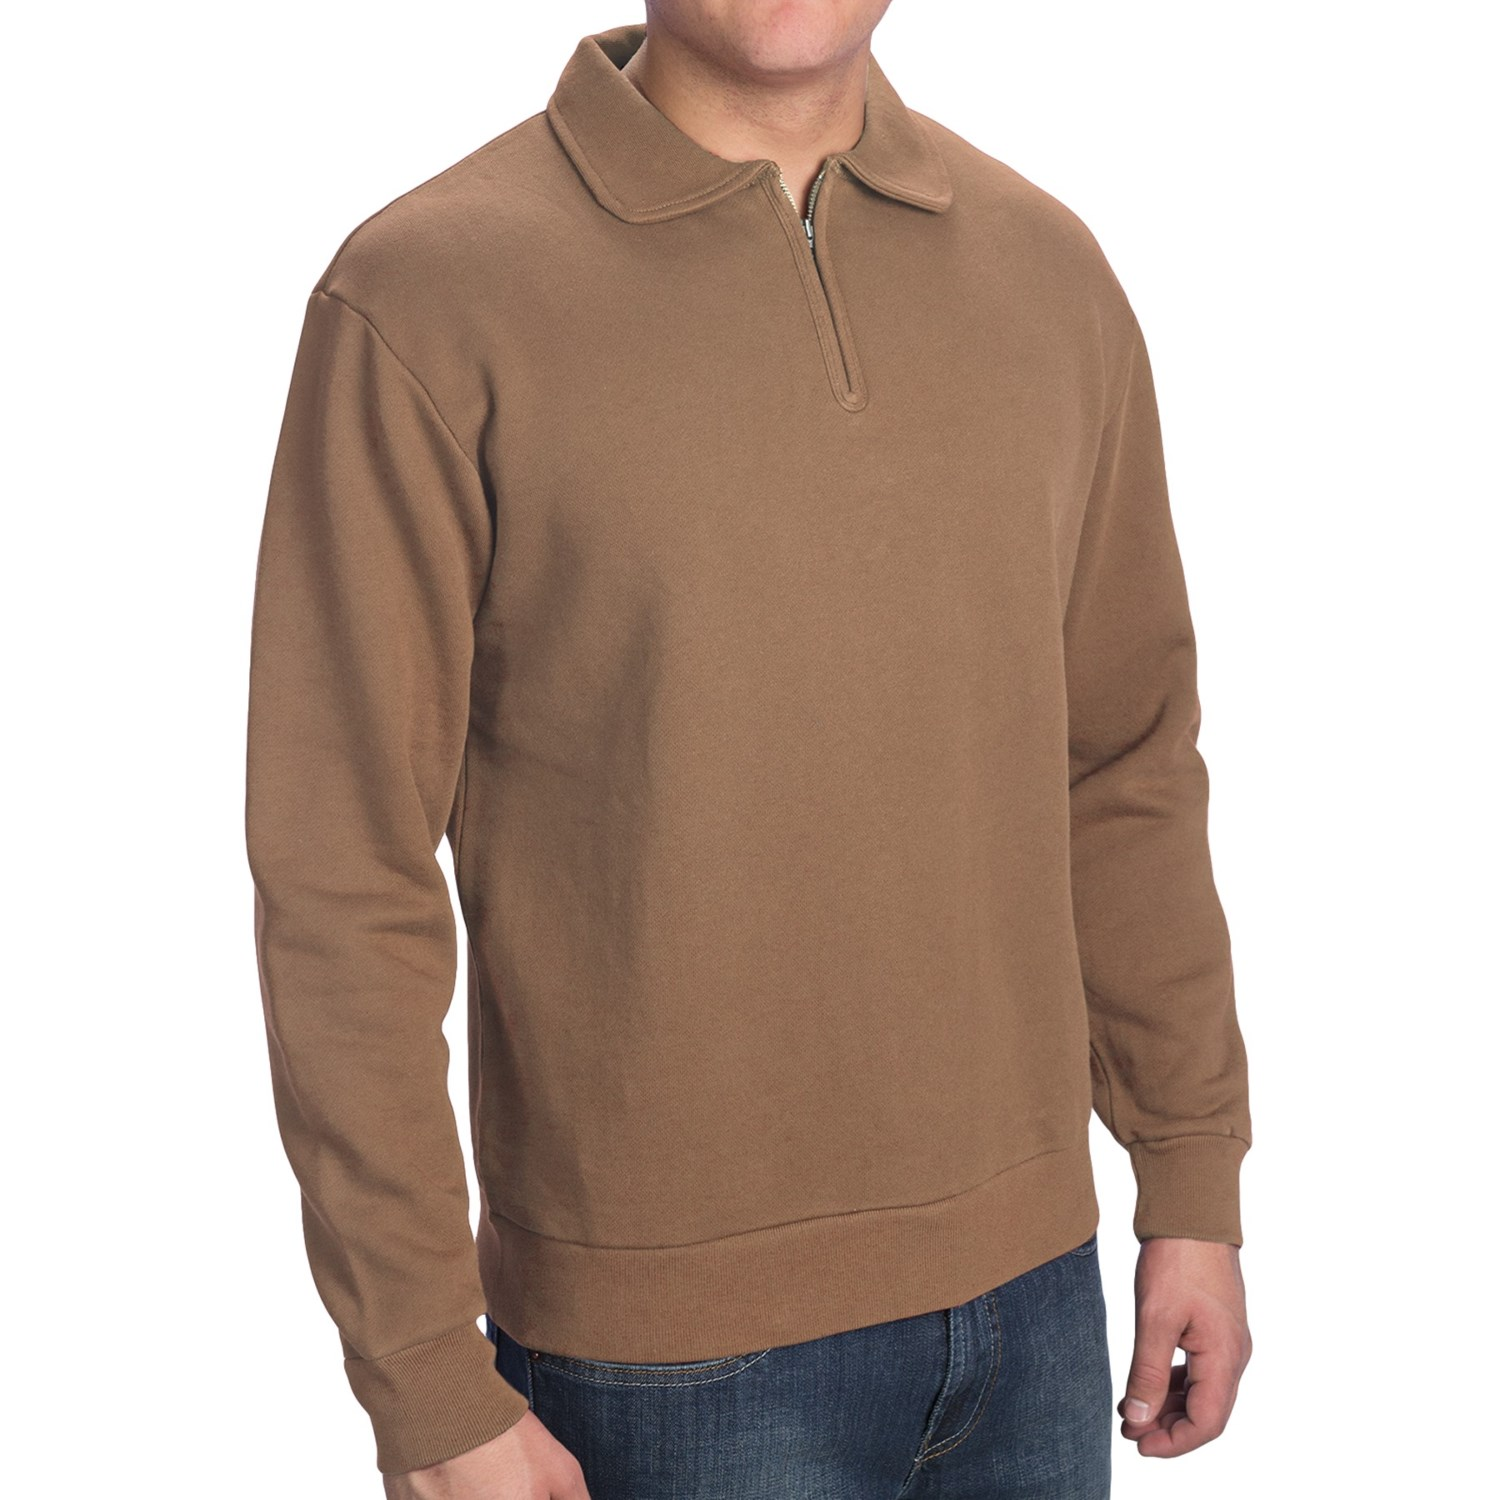 Find great deals on eBay for pullover shirt. Shop with confidence.